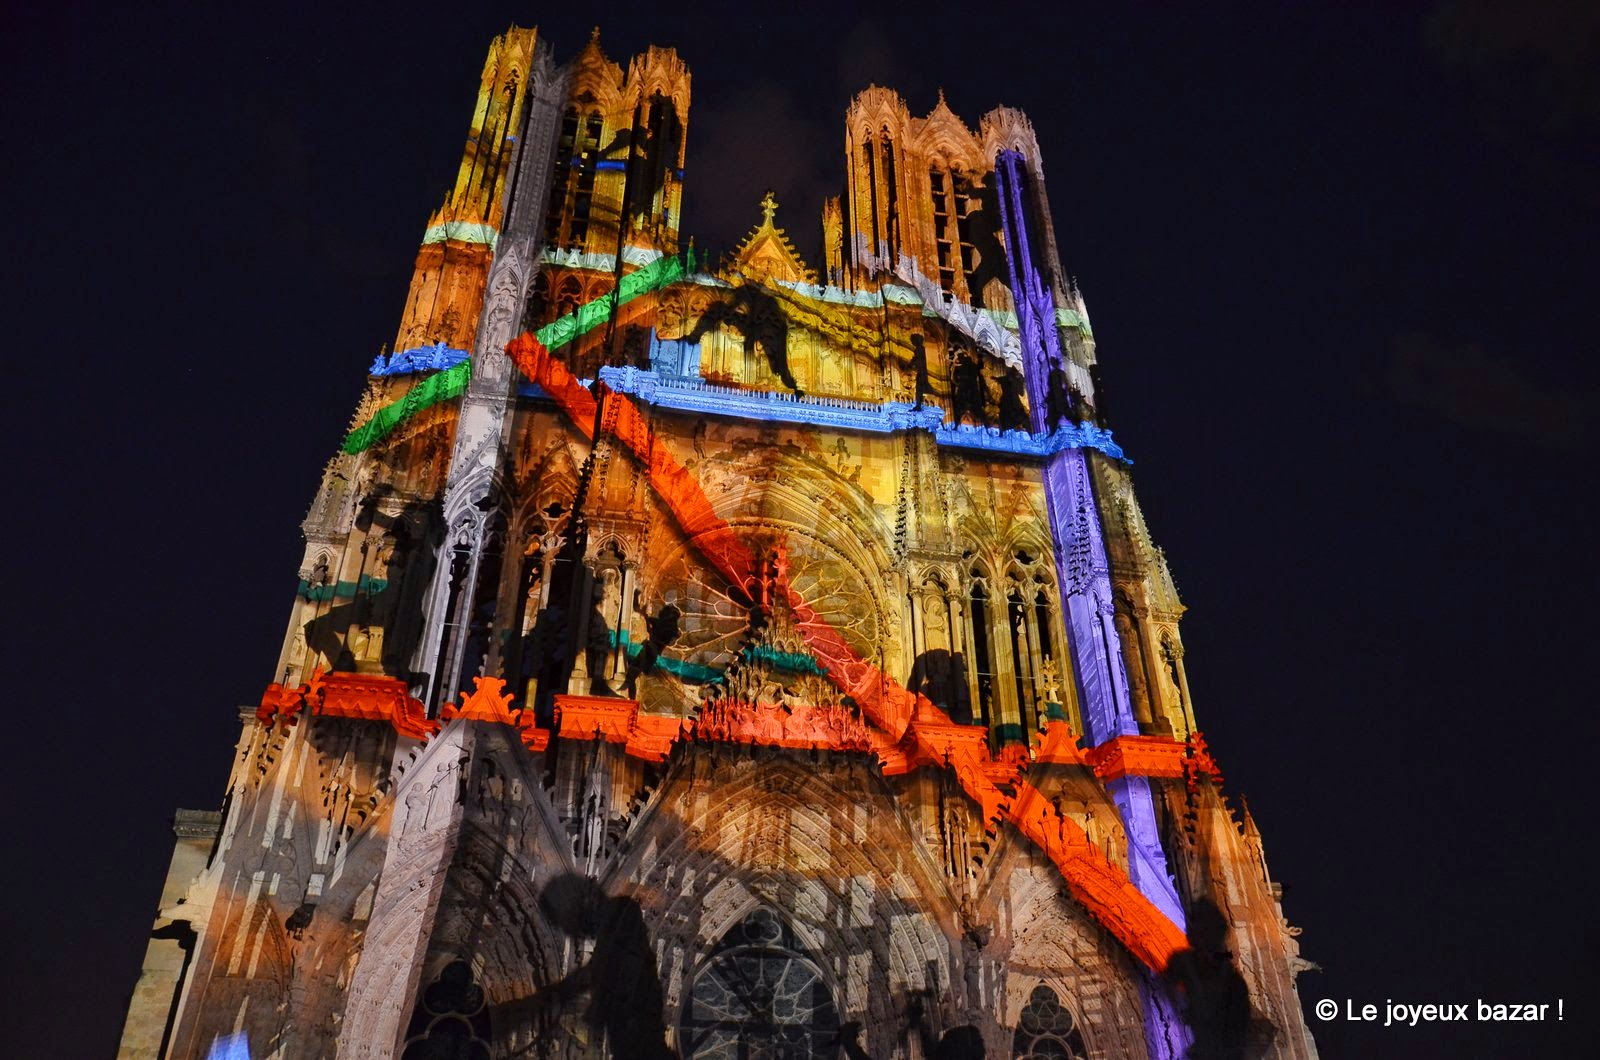 Reims Cathedrale Lumiere Reims Cathédrale Rêves de